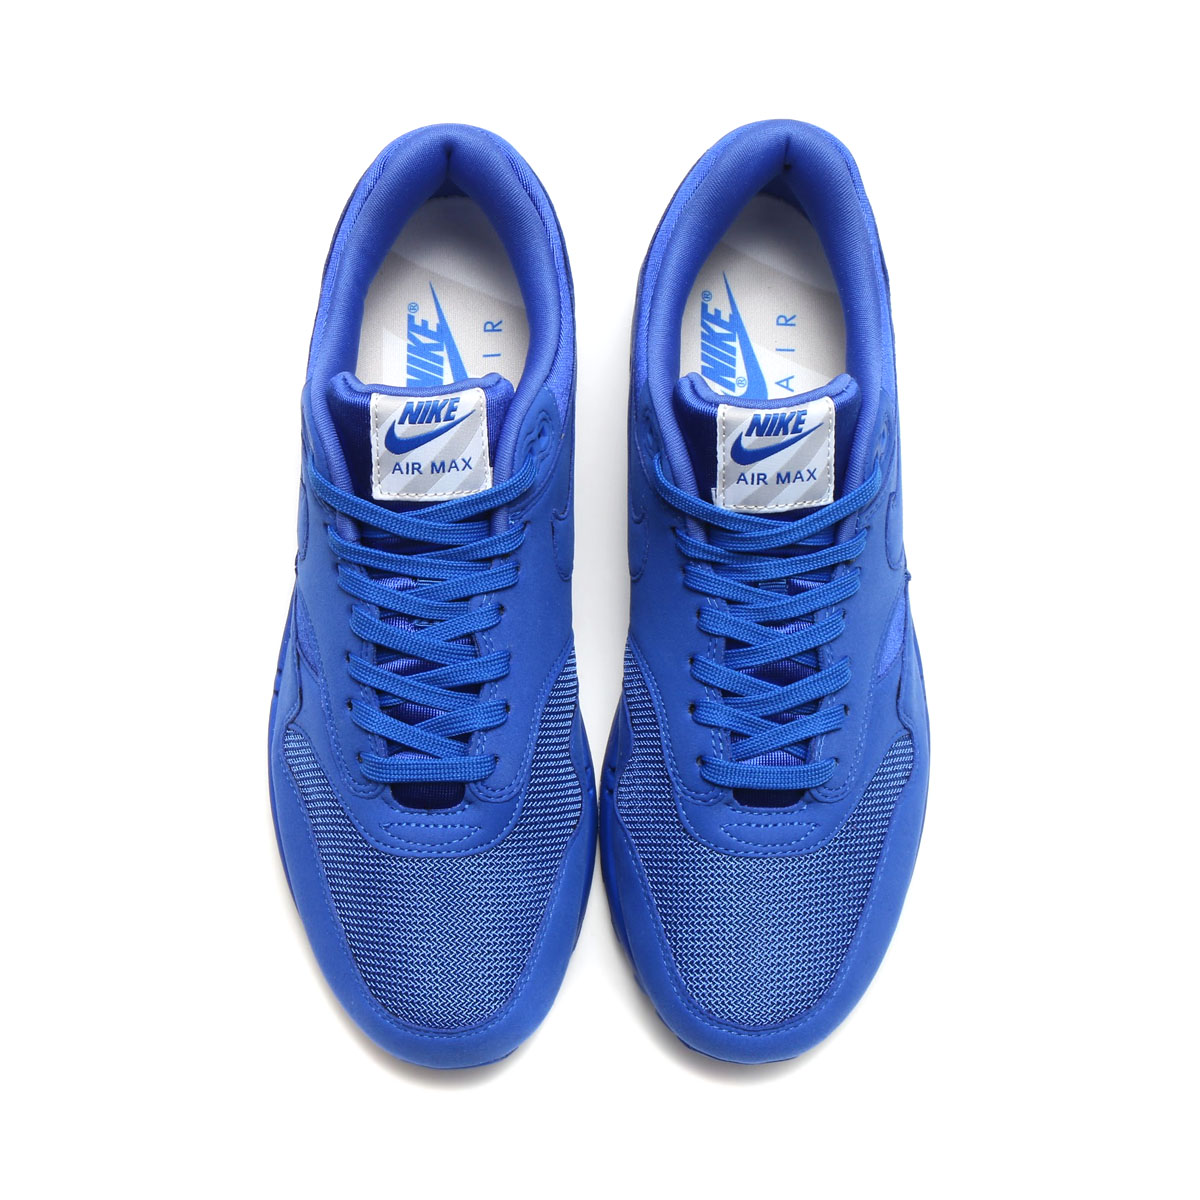 NIKE AIR MAX 1 PREMIUM (나이키 에어 막스 1 프리미엄) (GAME ROYAL/GAME ROYAL-NEUTRAL GREY-WHITE) 17 SU-I